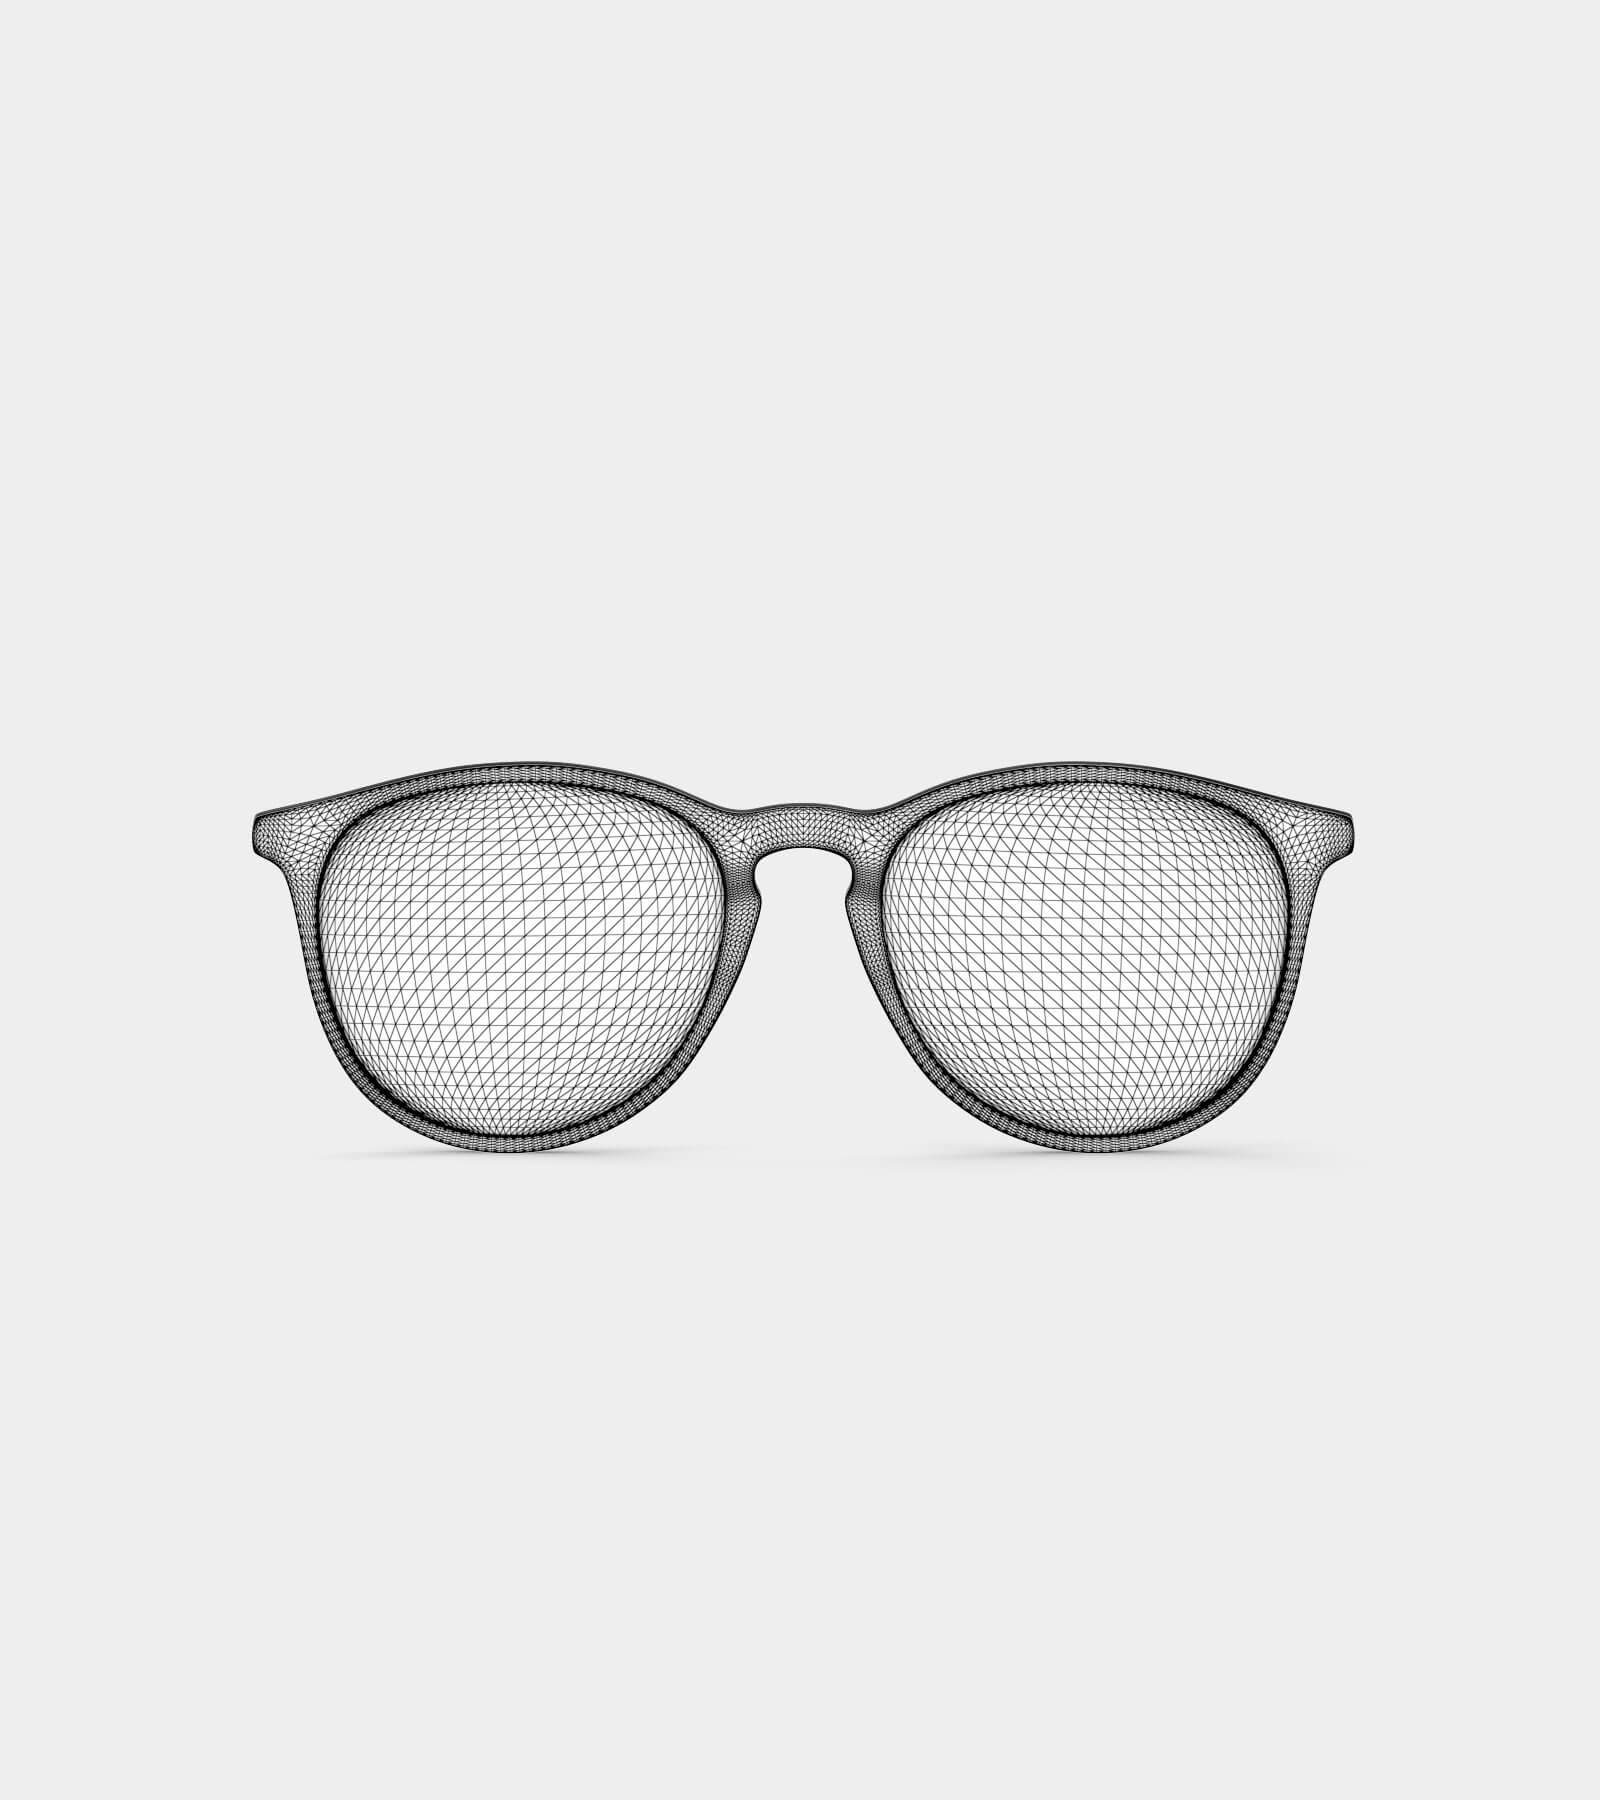 Glasses-wire-2 3D Model